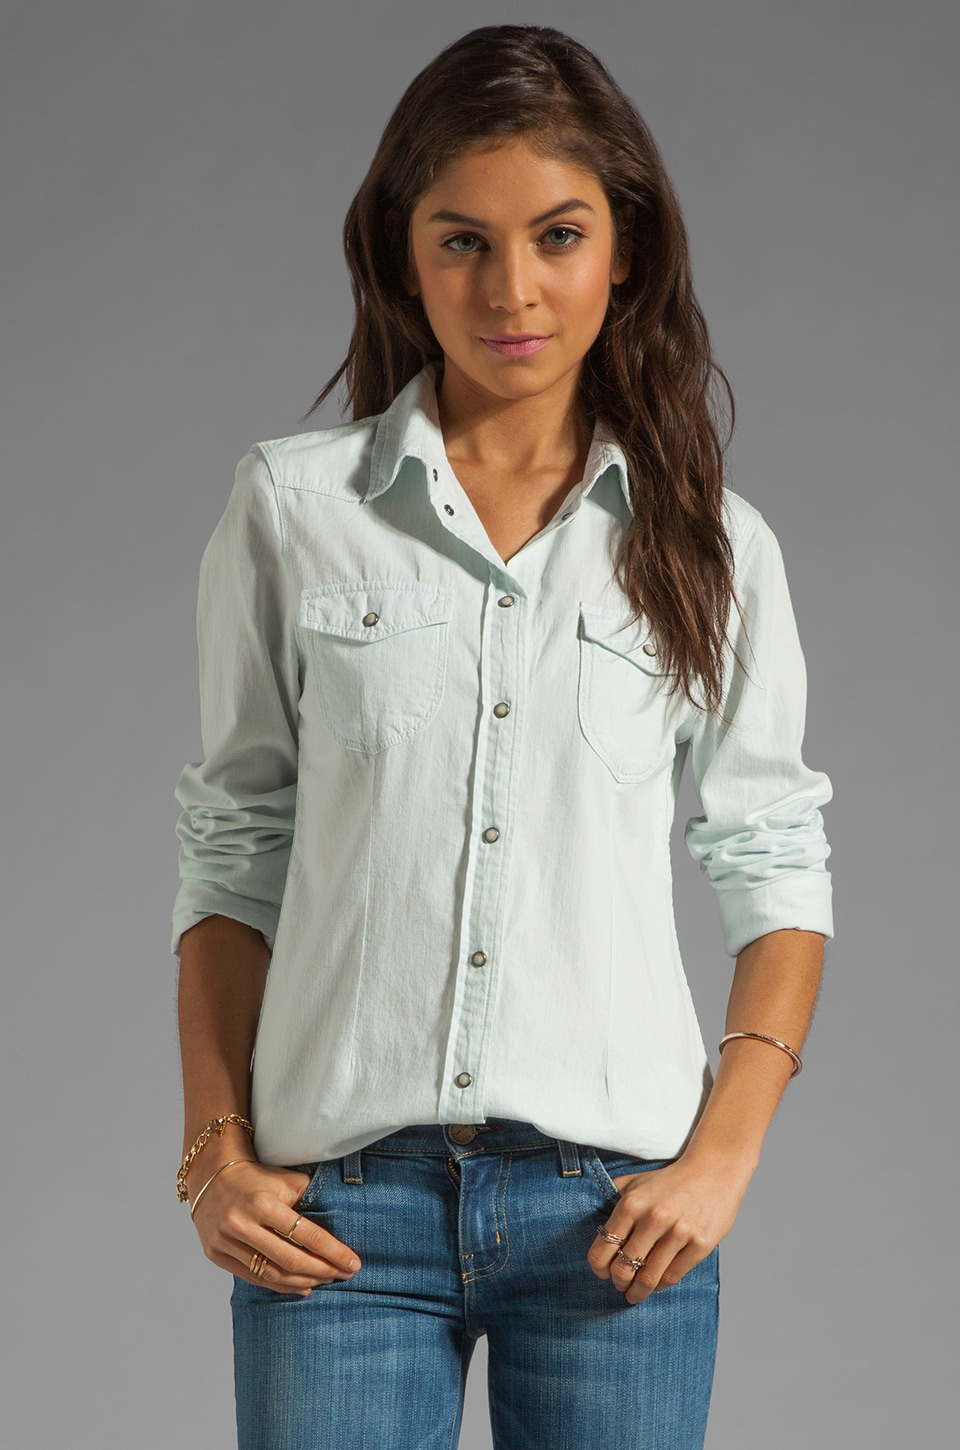 Sanctuary Southern Rock Top in White Out